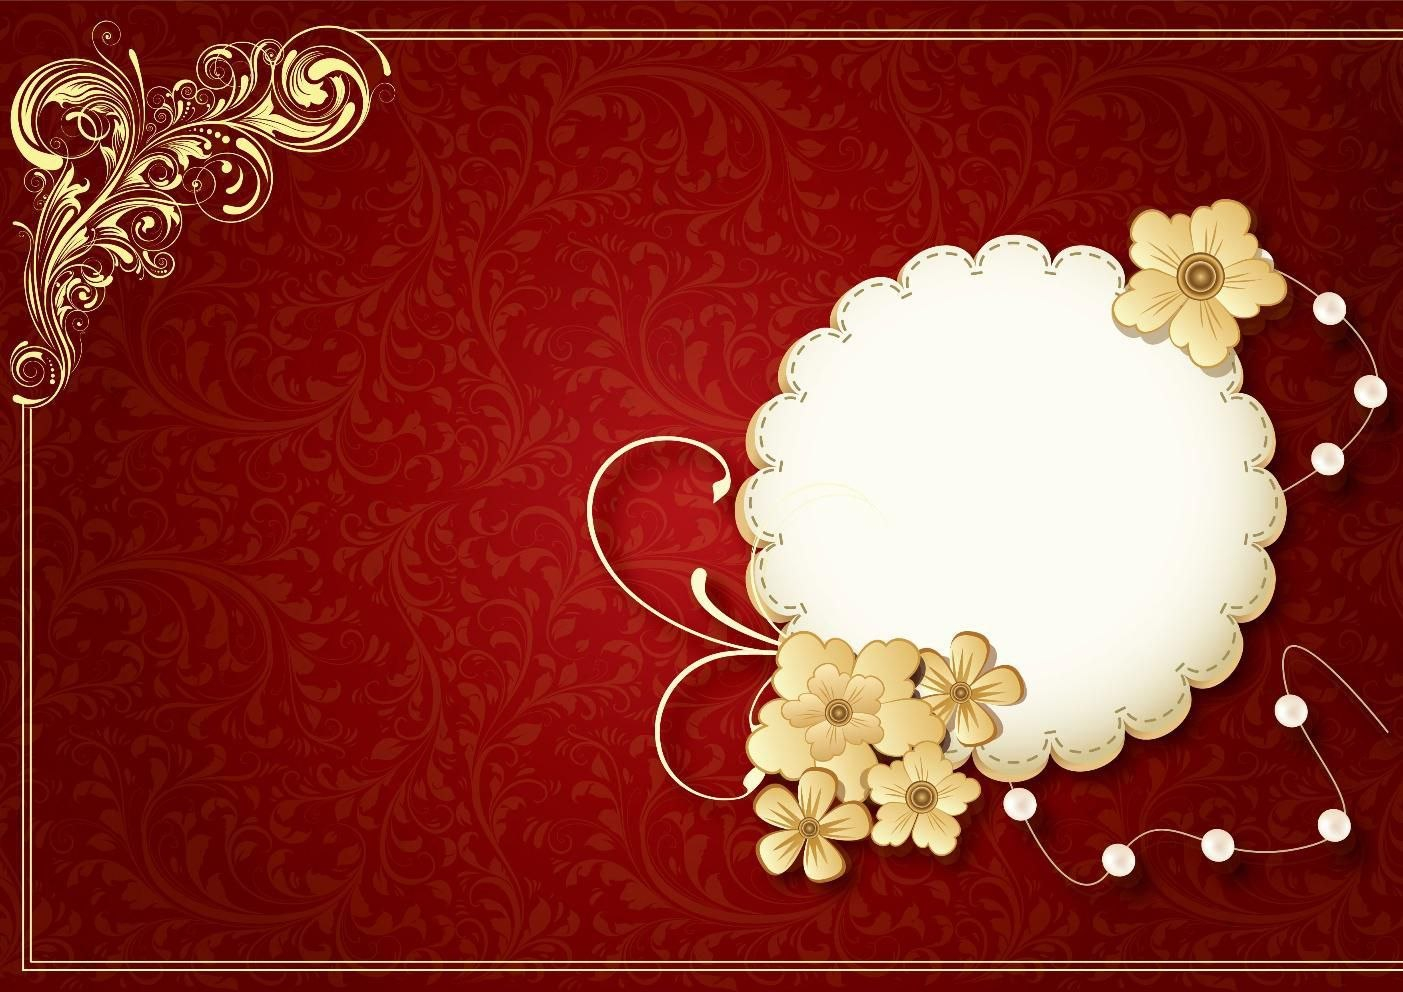 Create Your Own Indian Wedding Invitation Blank Template Intended For Indian Wedding Cards Design Templates